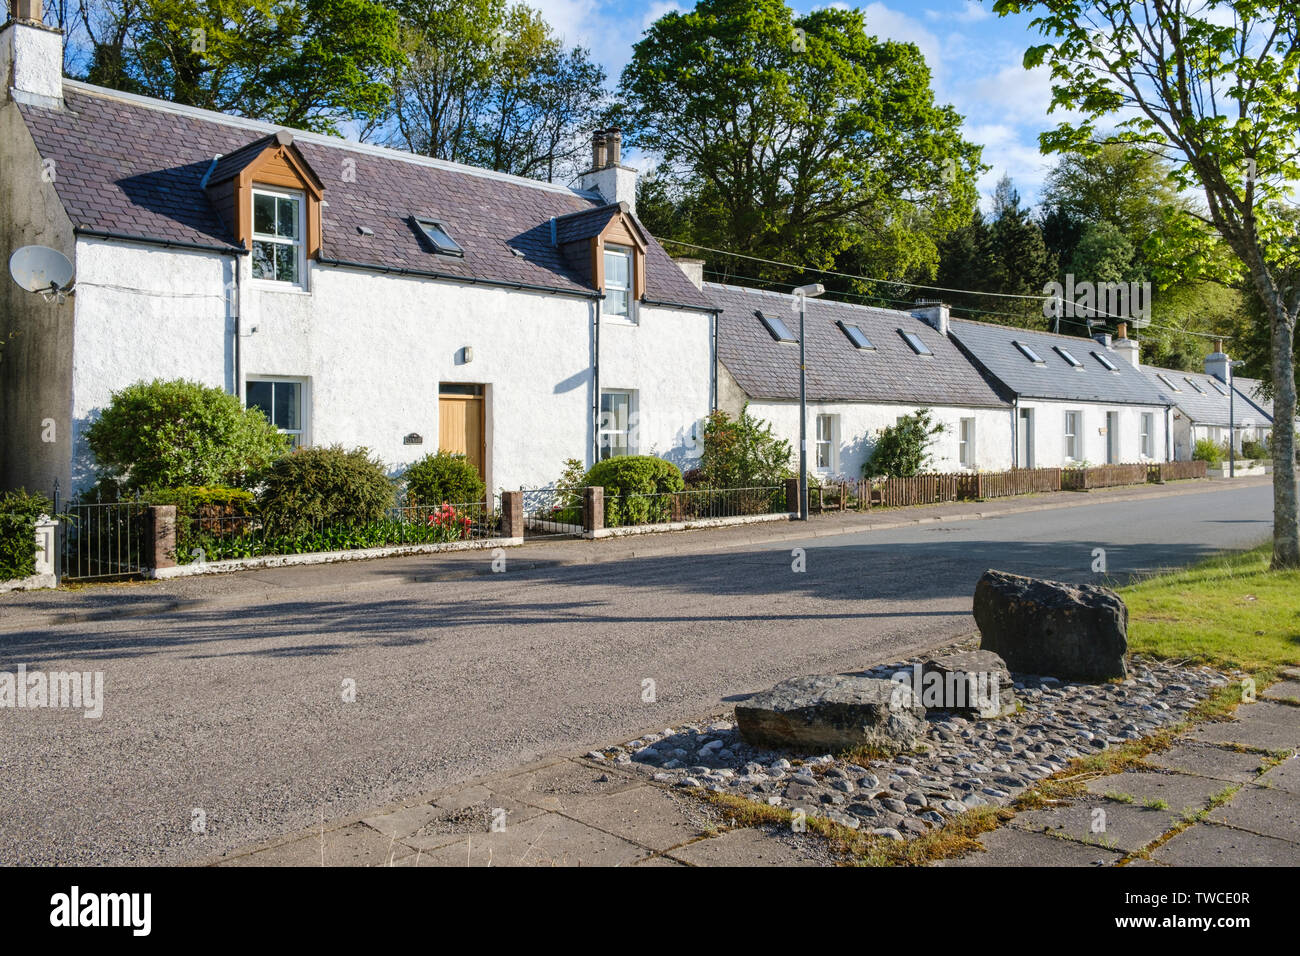 Cottages by the roadside facing Loch Carron in the village of Lochcarron, Wester Ross, Highlands of Scotland. North Coast 500 route. - Stock Image